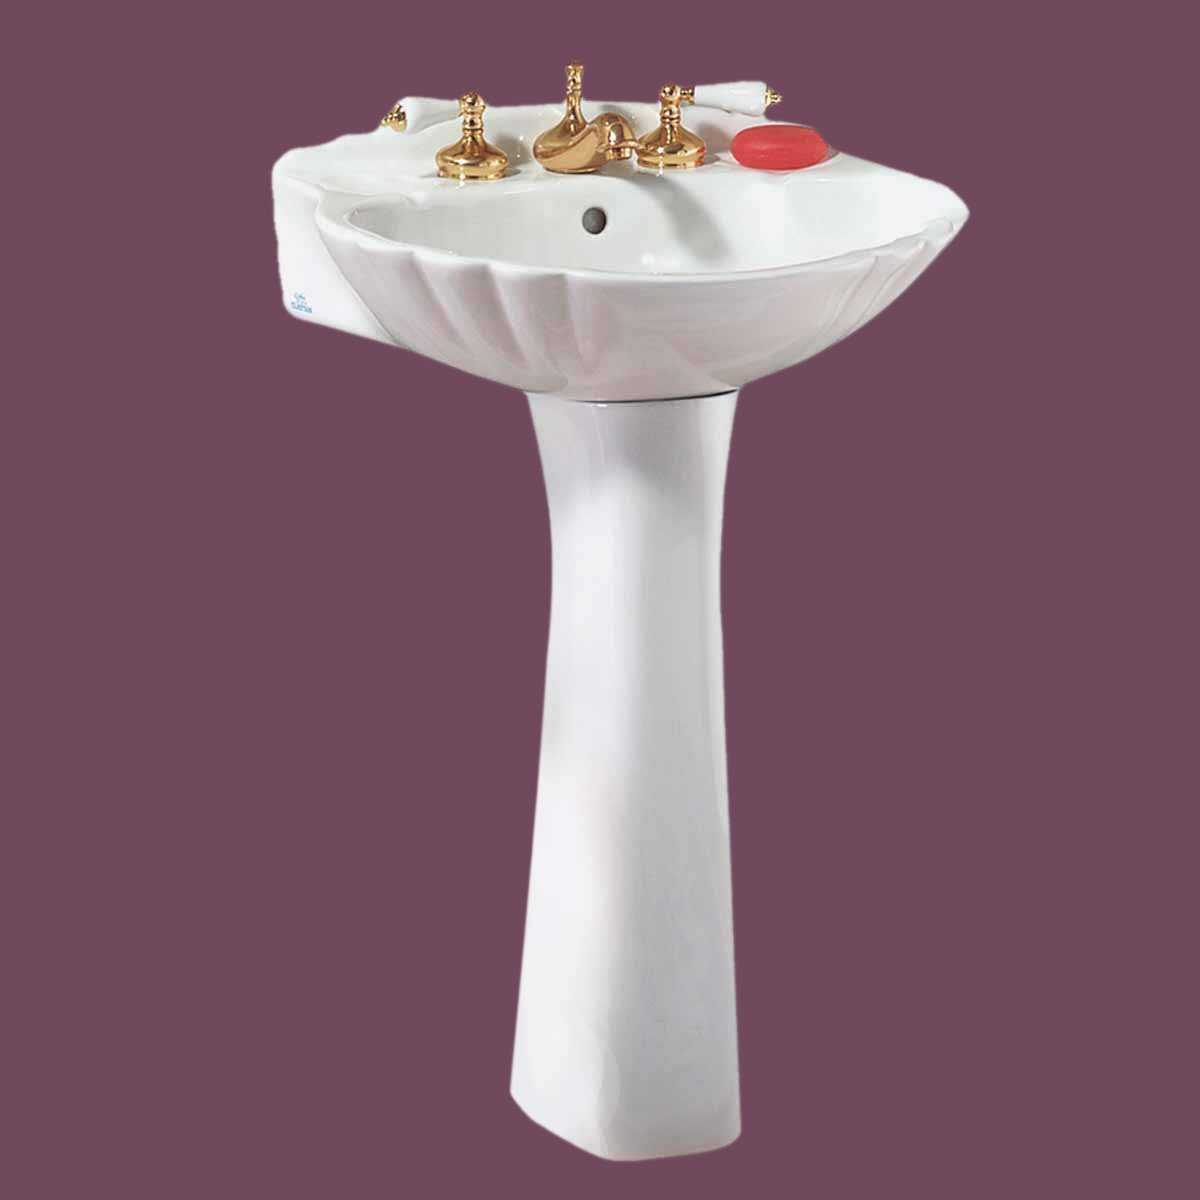 Pedestal Sink Medium White Grade A Vitreous China